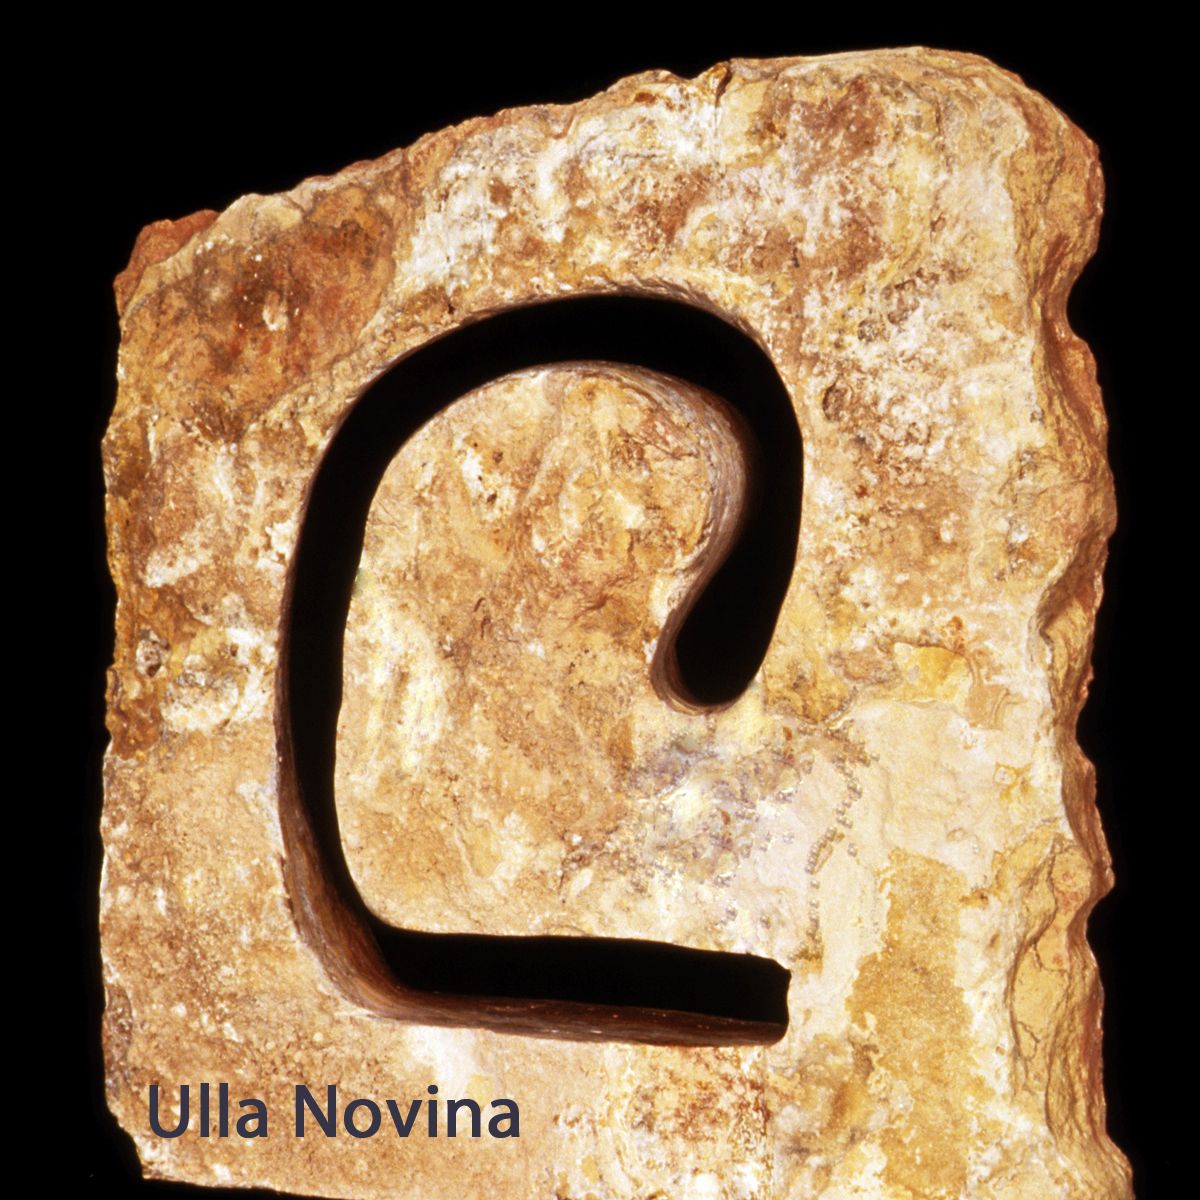 Ulla Novina: Ancient Sign (large view)